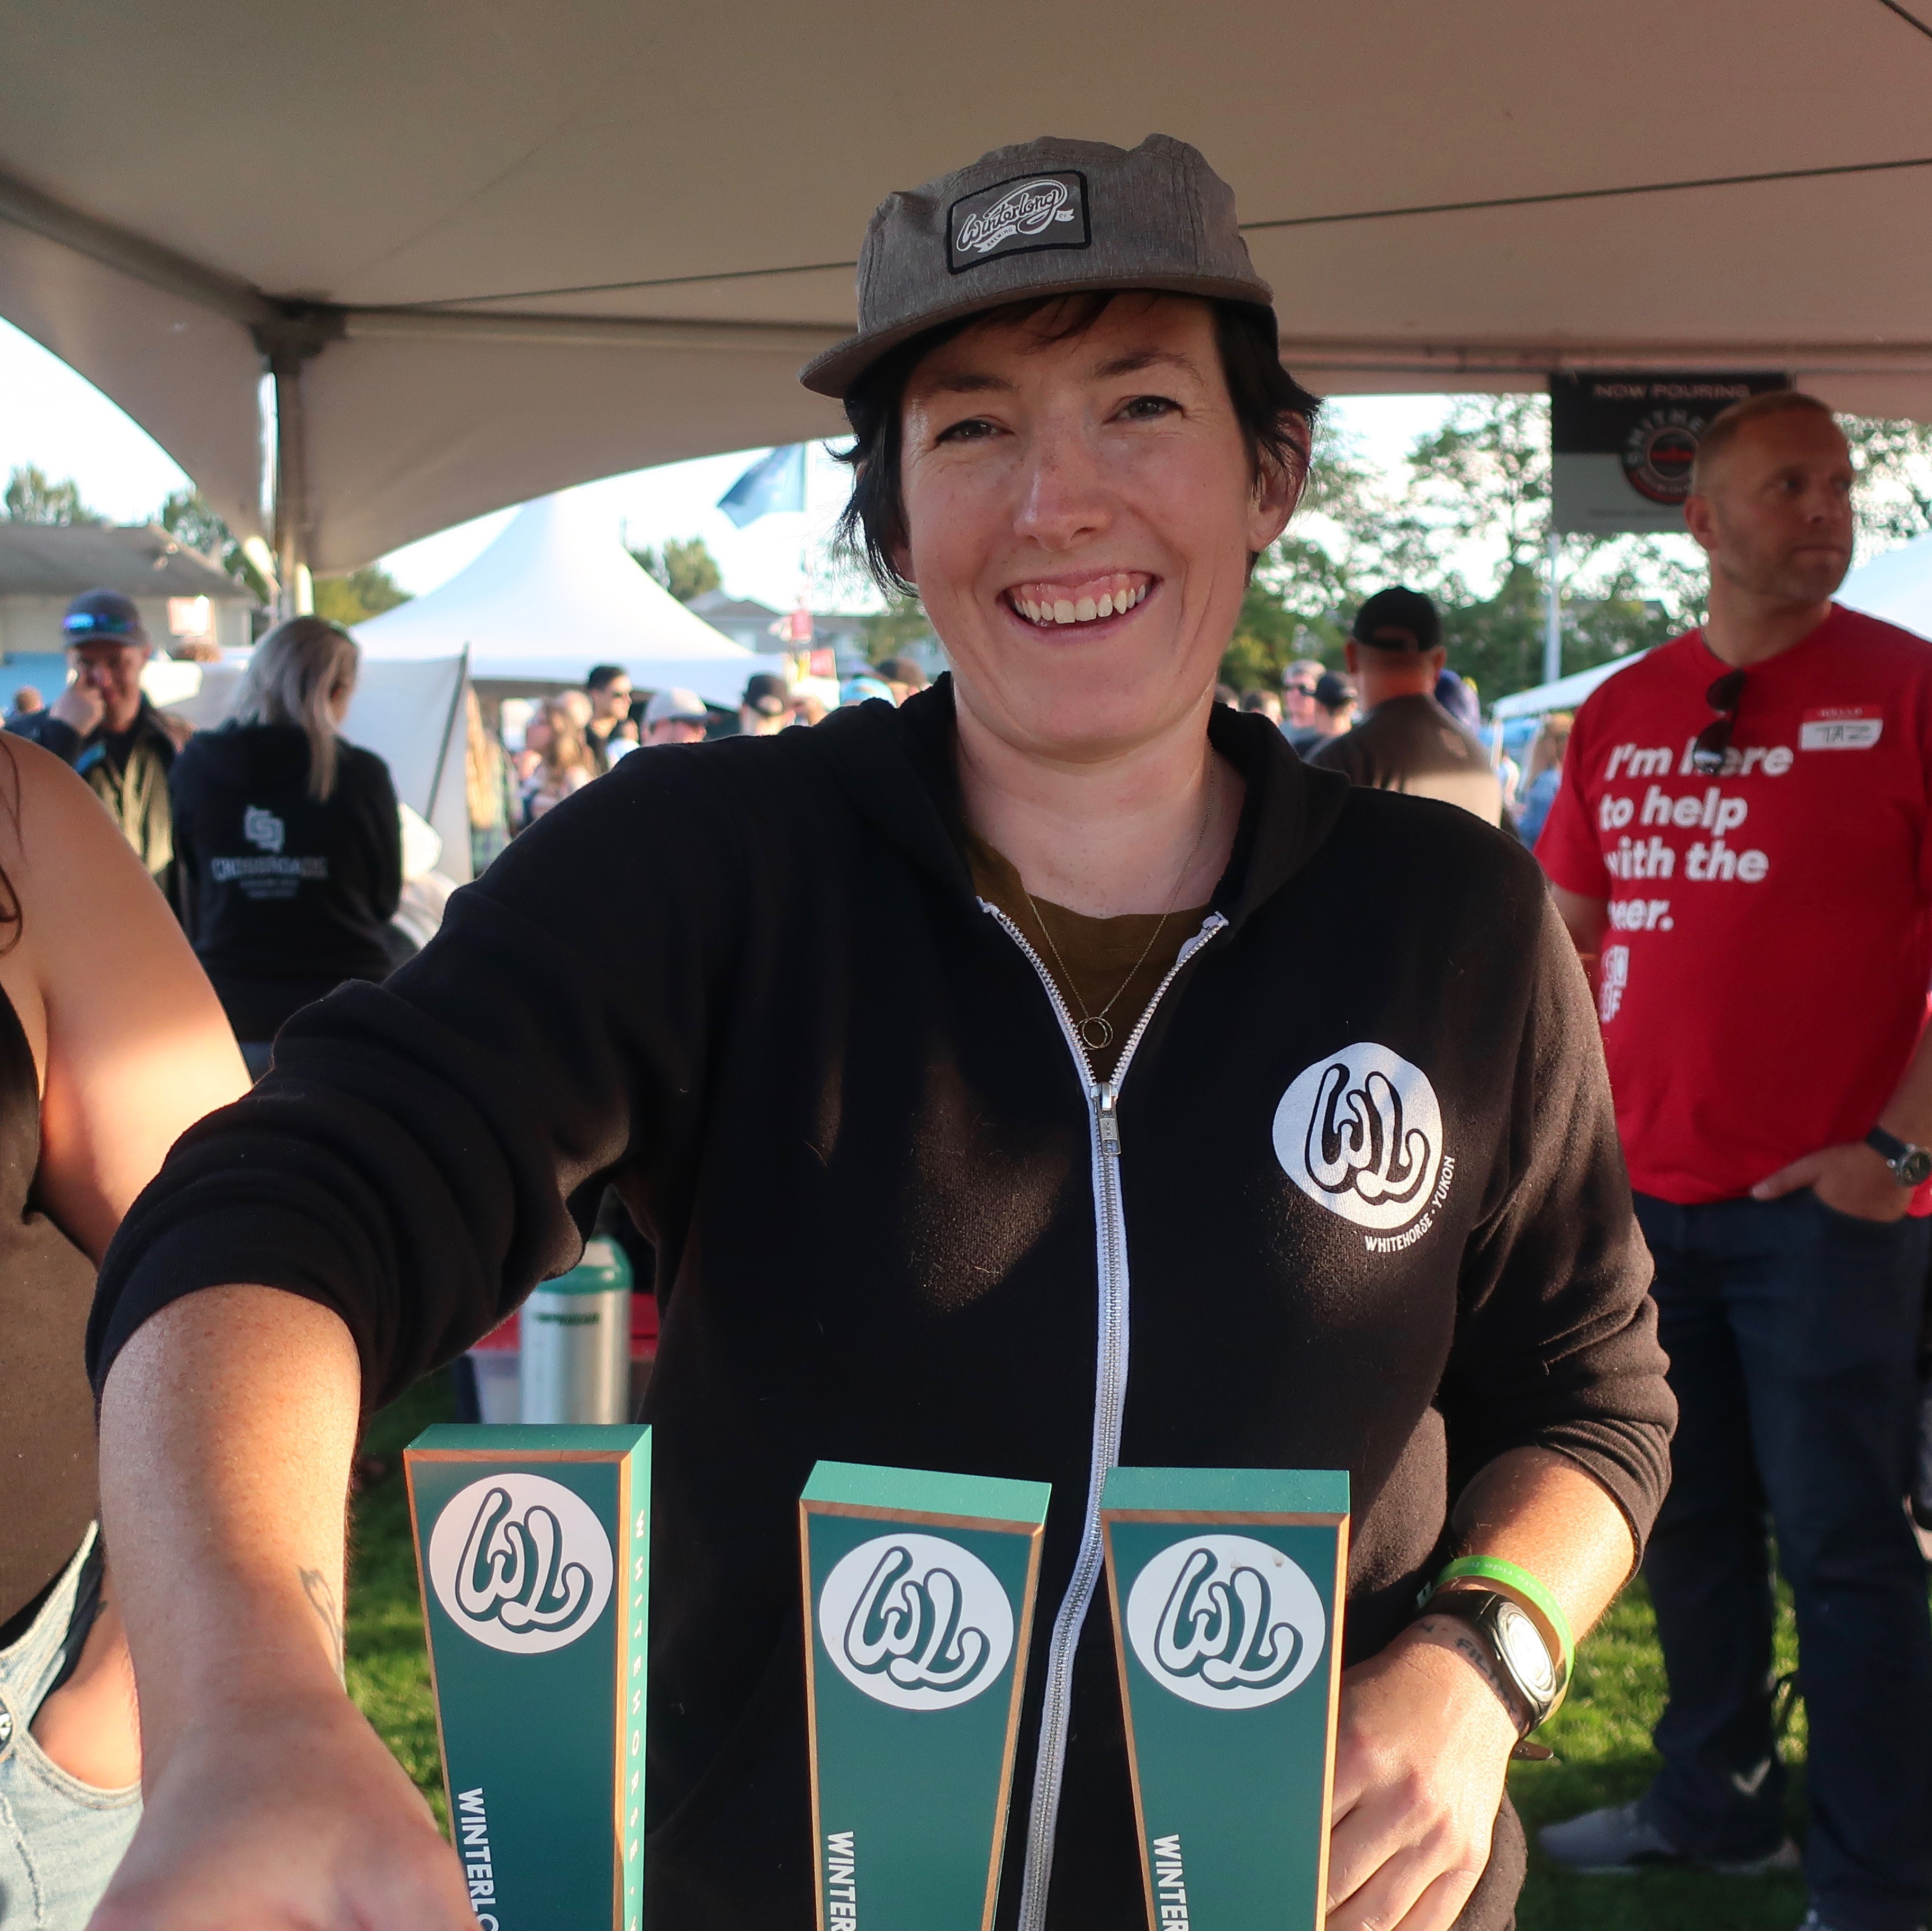 Winterlong Brewing, the sole brewery from Yukon, served its beers at the 2019 Great Canadian Beer Festival.